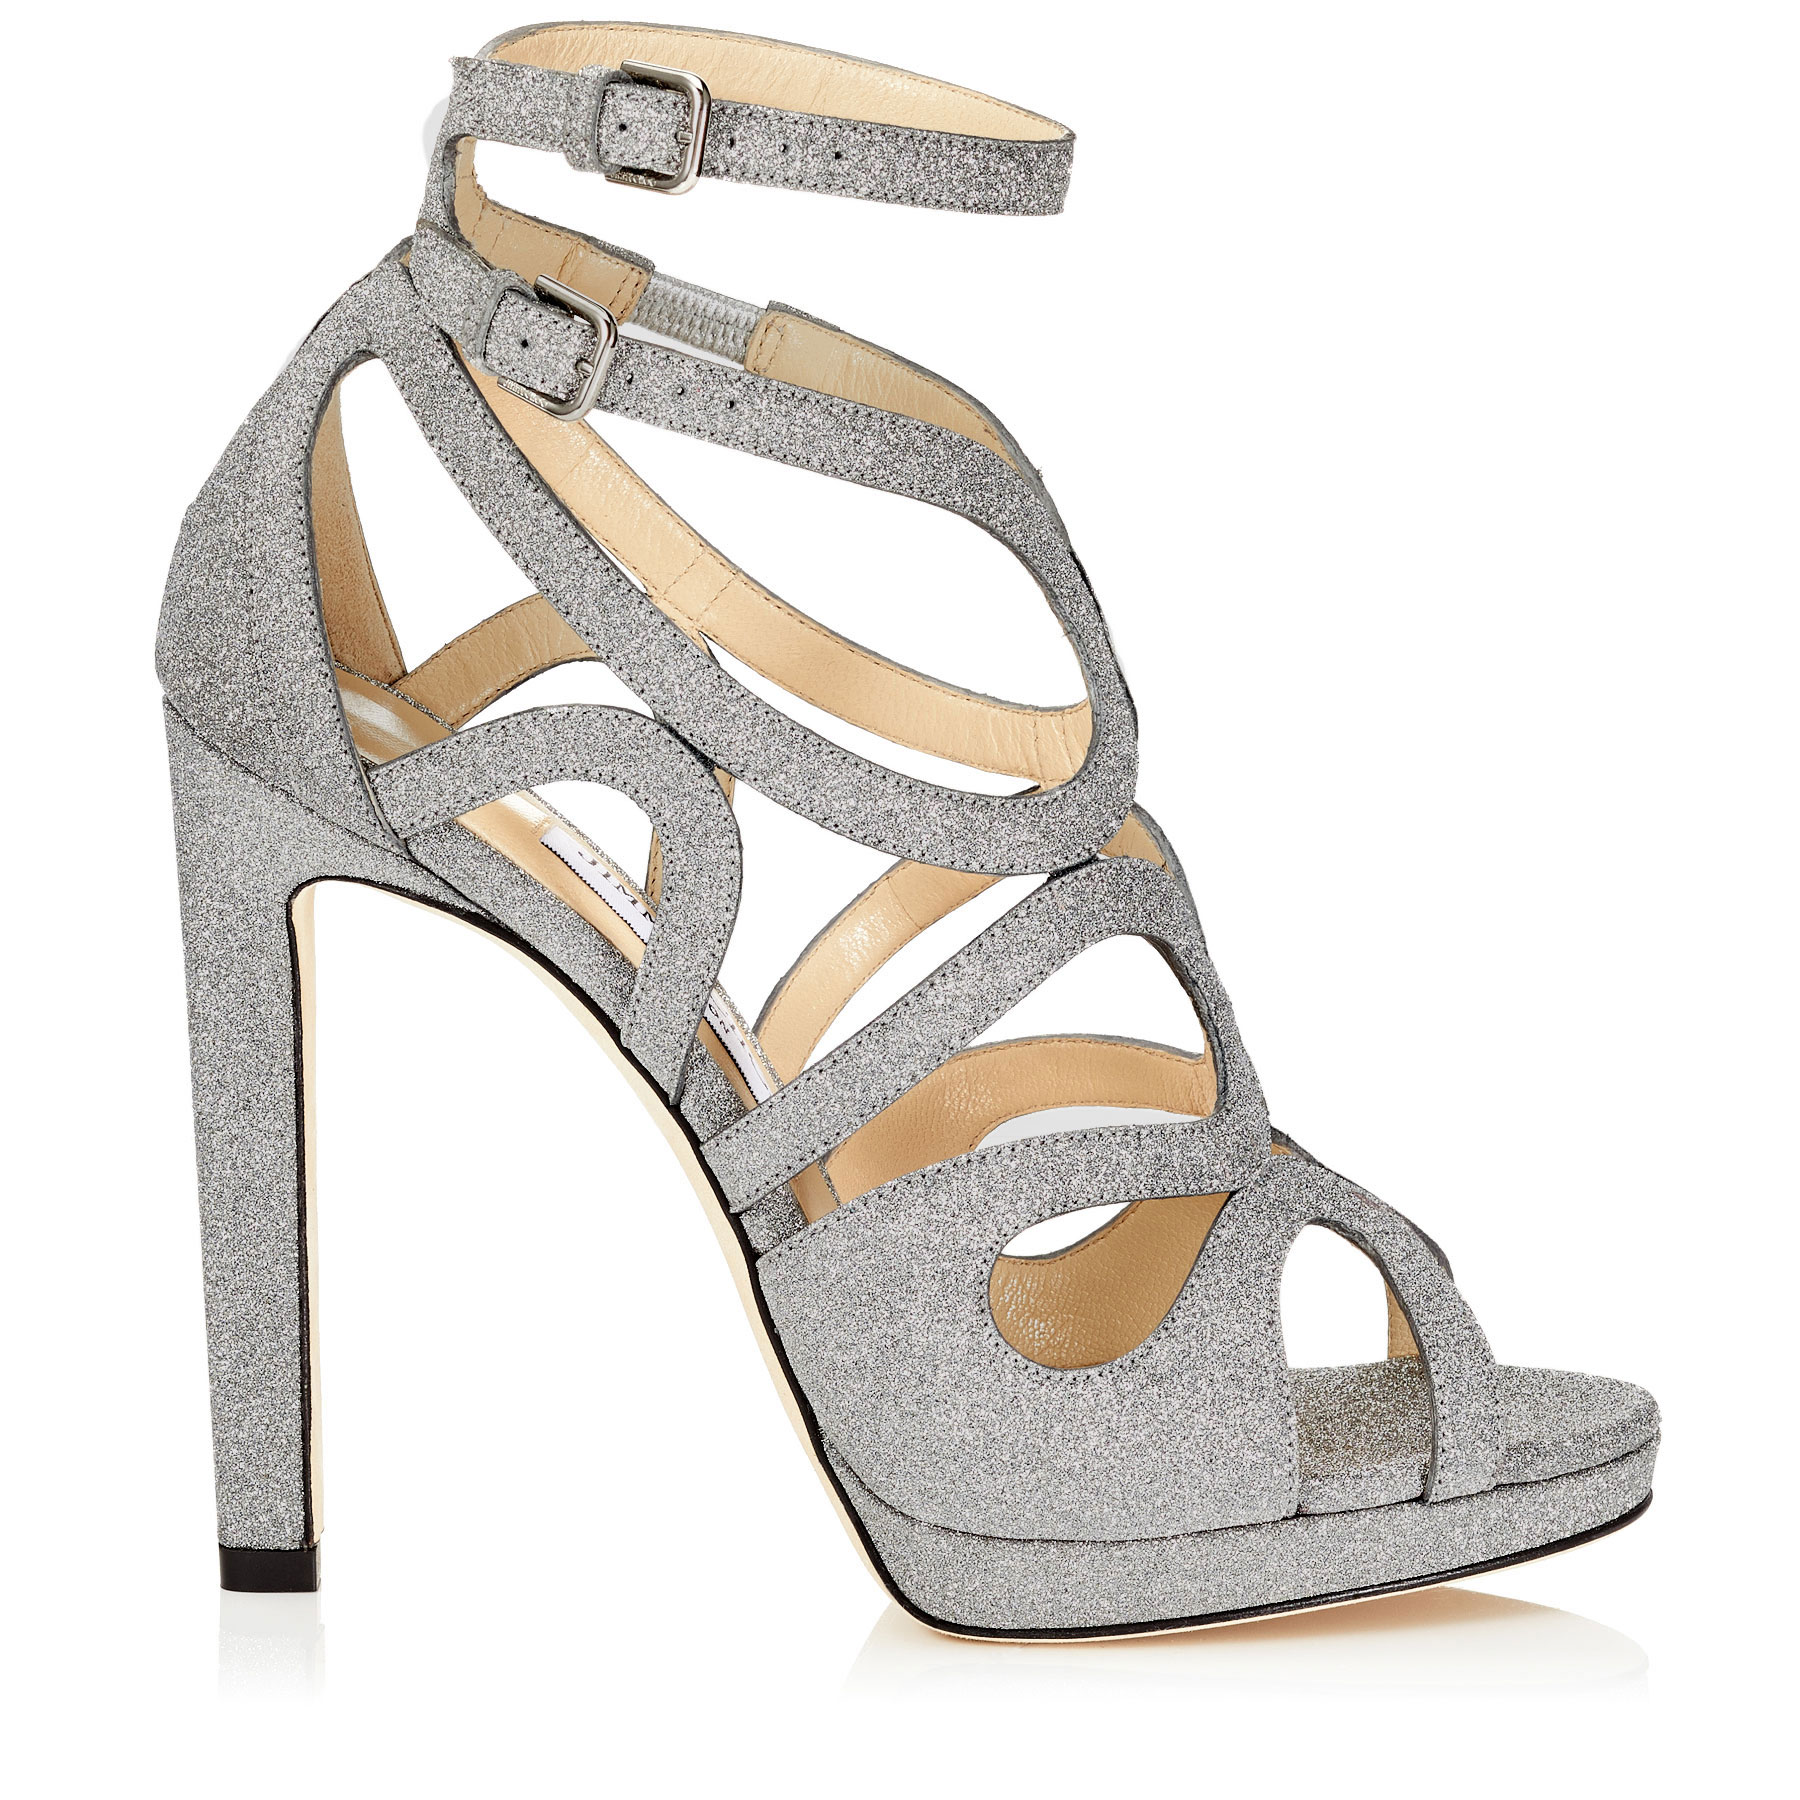 LEO 120 Silver Fine Glitter Leather Platform Sandals by Jimmy Choo